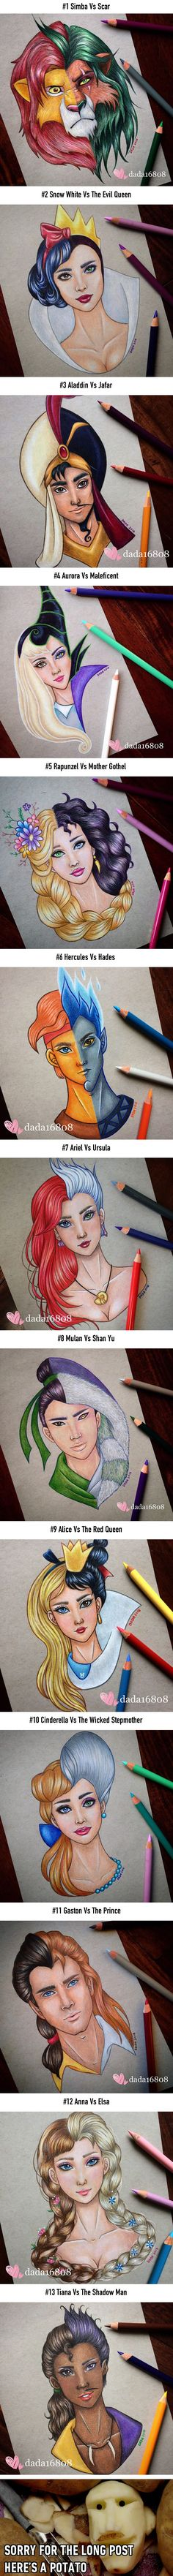 Disney characters combined with their villain in one drawing. It's soo awesome!